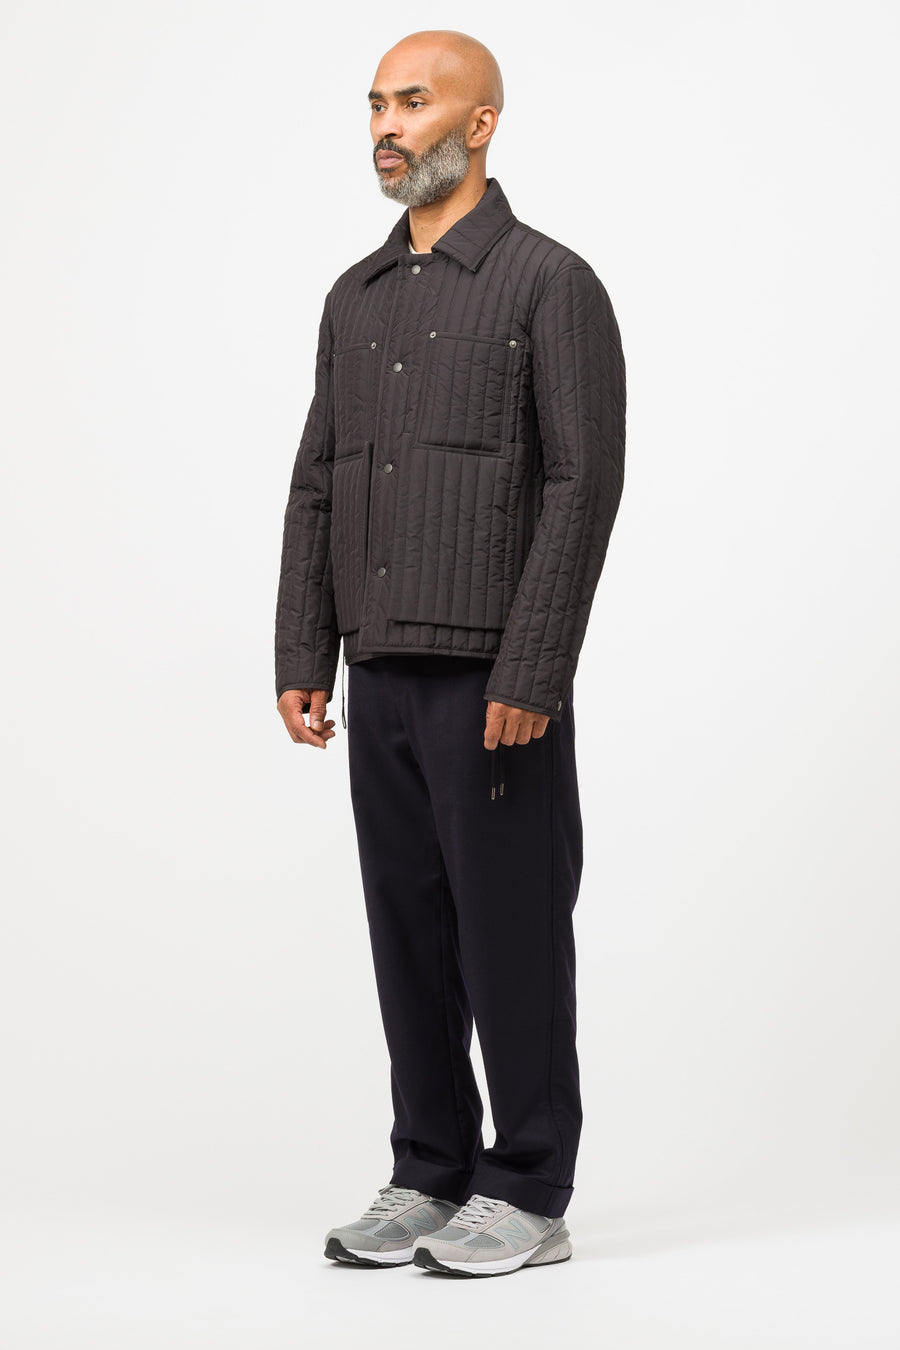 Craig Green Quilted Worker Jacket in Black - Notre